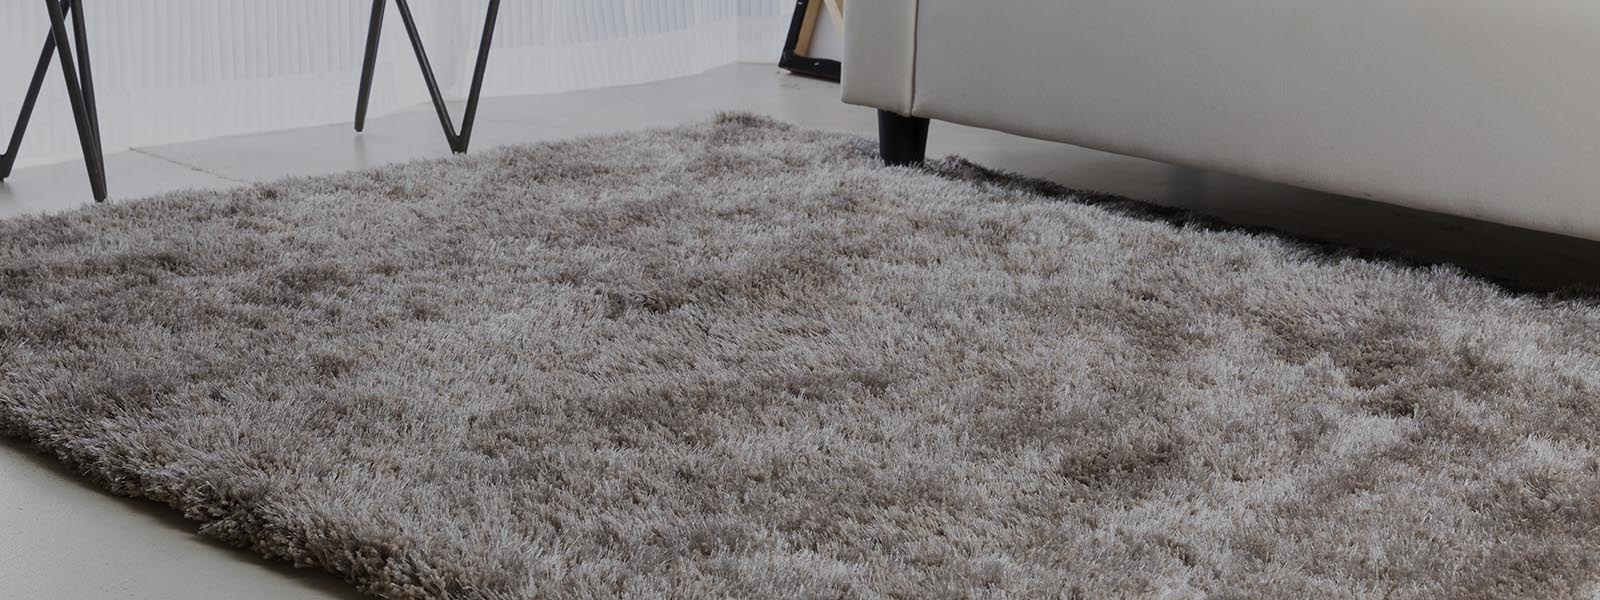 Sizing it Up – How to Choose the Right Size Rug